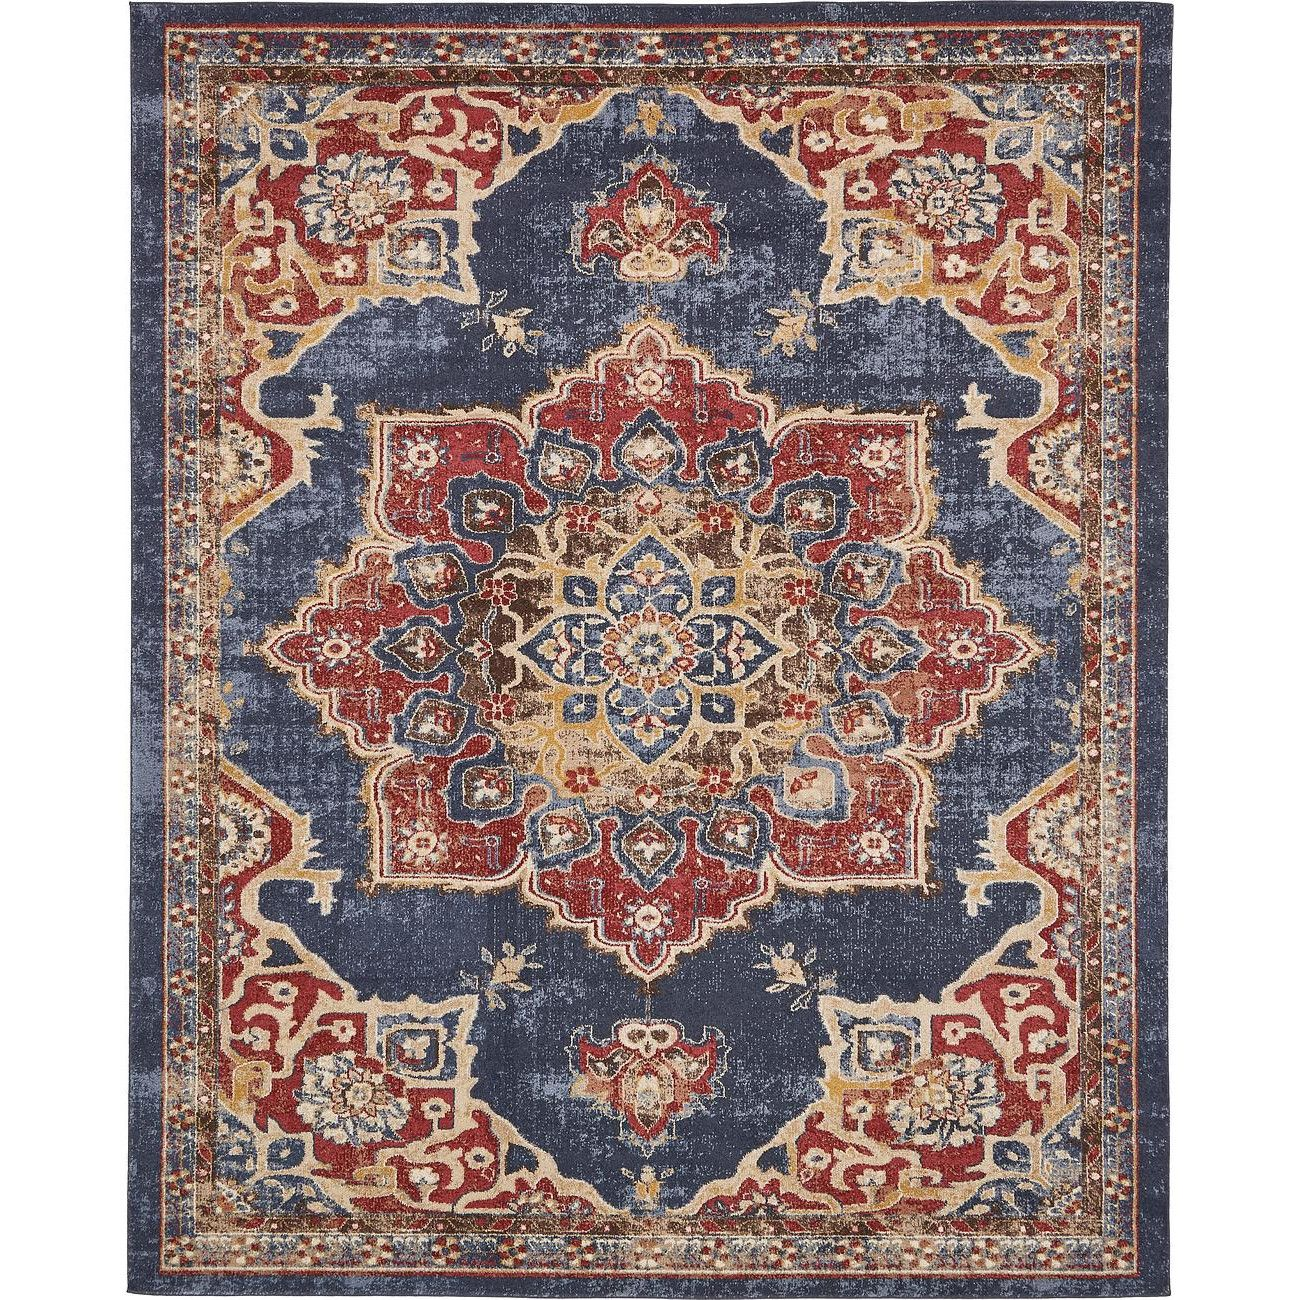 Kas Rugs Manor Spice Blue Expressions 9 Ft X 12 Ft Distressed Area Rug Spice Red Purple Area Rugs Rugs Area Rugs